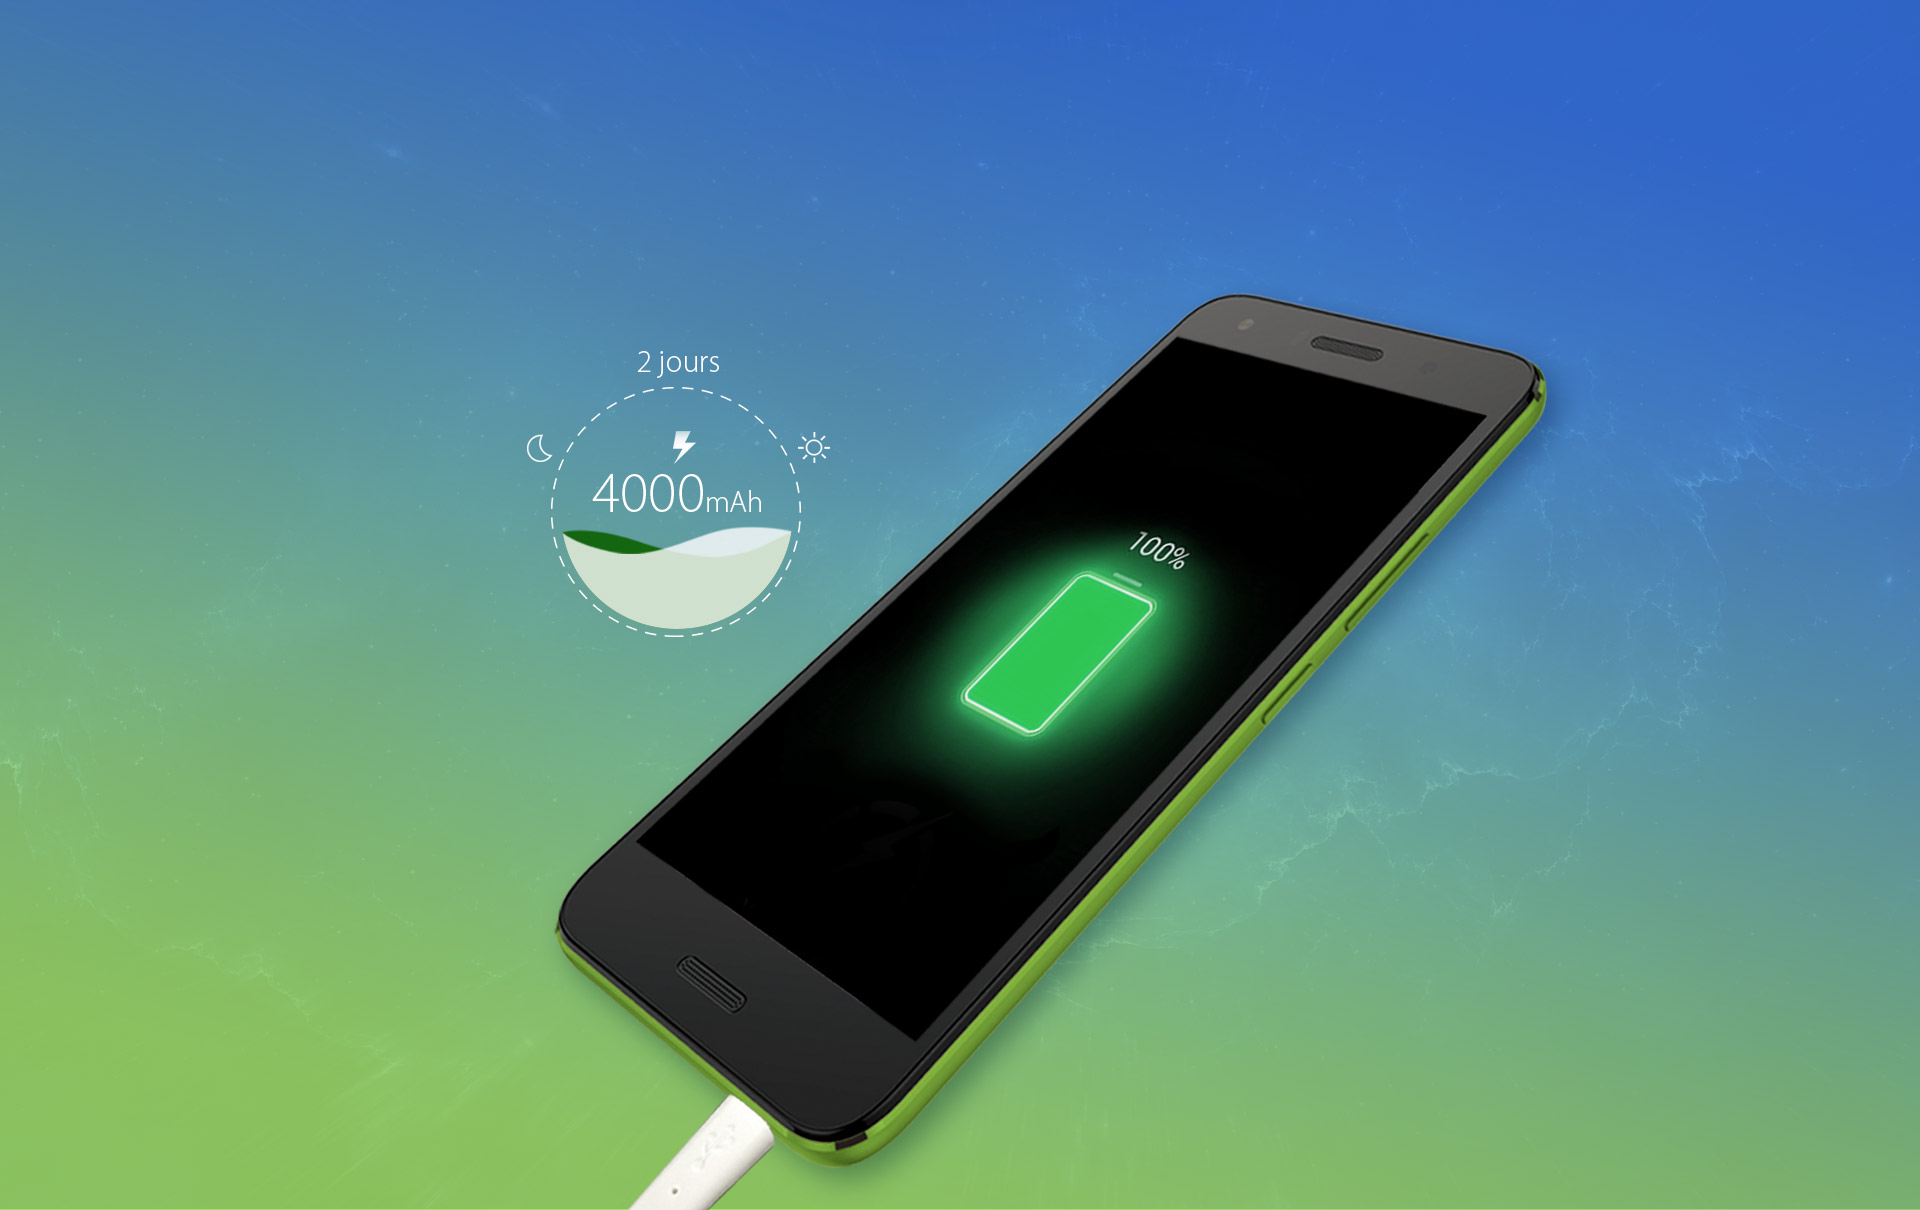 http://www.infinixmobility.com/fileadmin/infinix/source/images/hot5/fr/charge.jpg